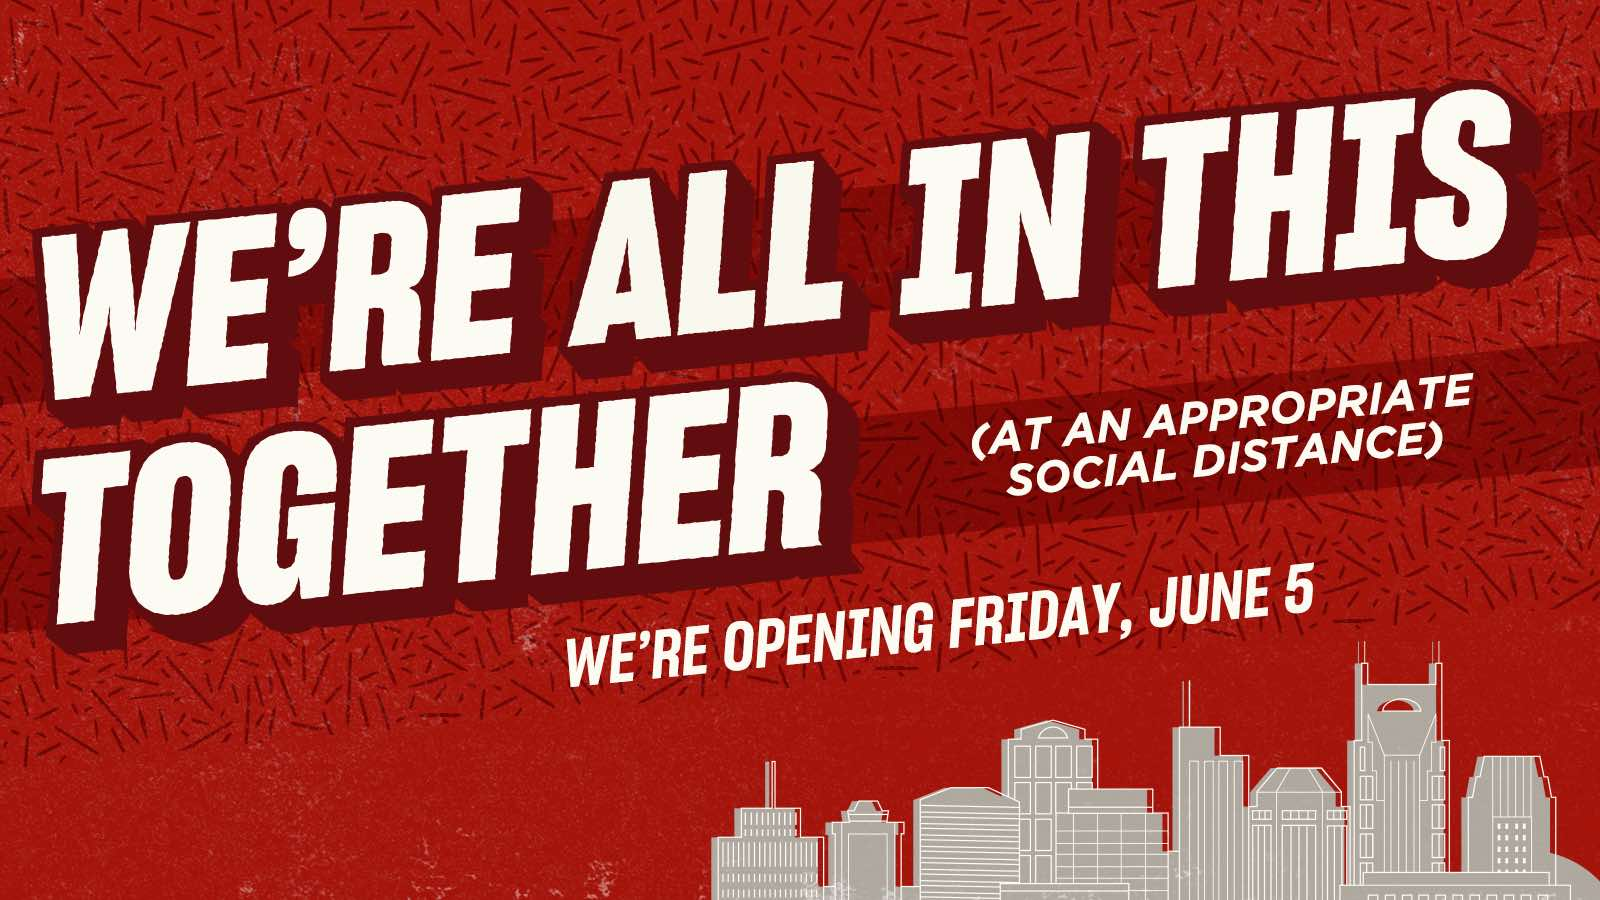 We're all in this together (at an appropriate social distance) - We're Opening Friday, June 5